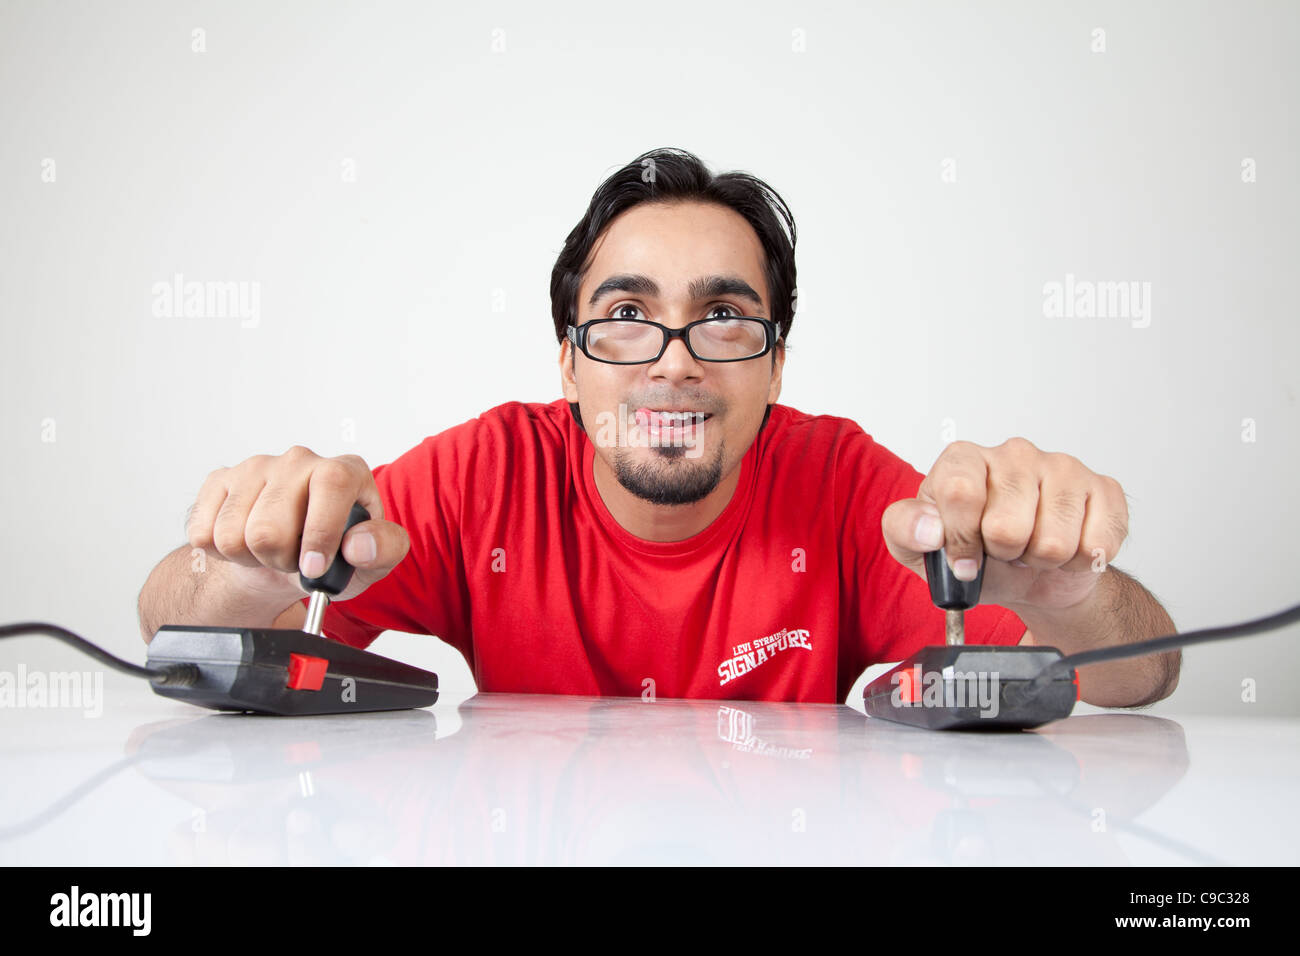 Nerd playing with two retro joystick controllers - Stock Image